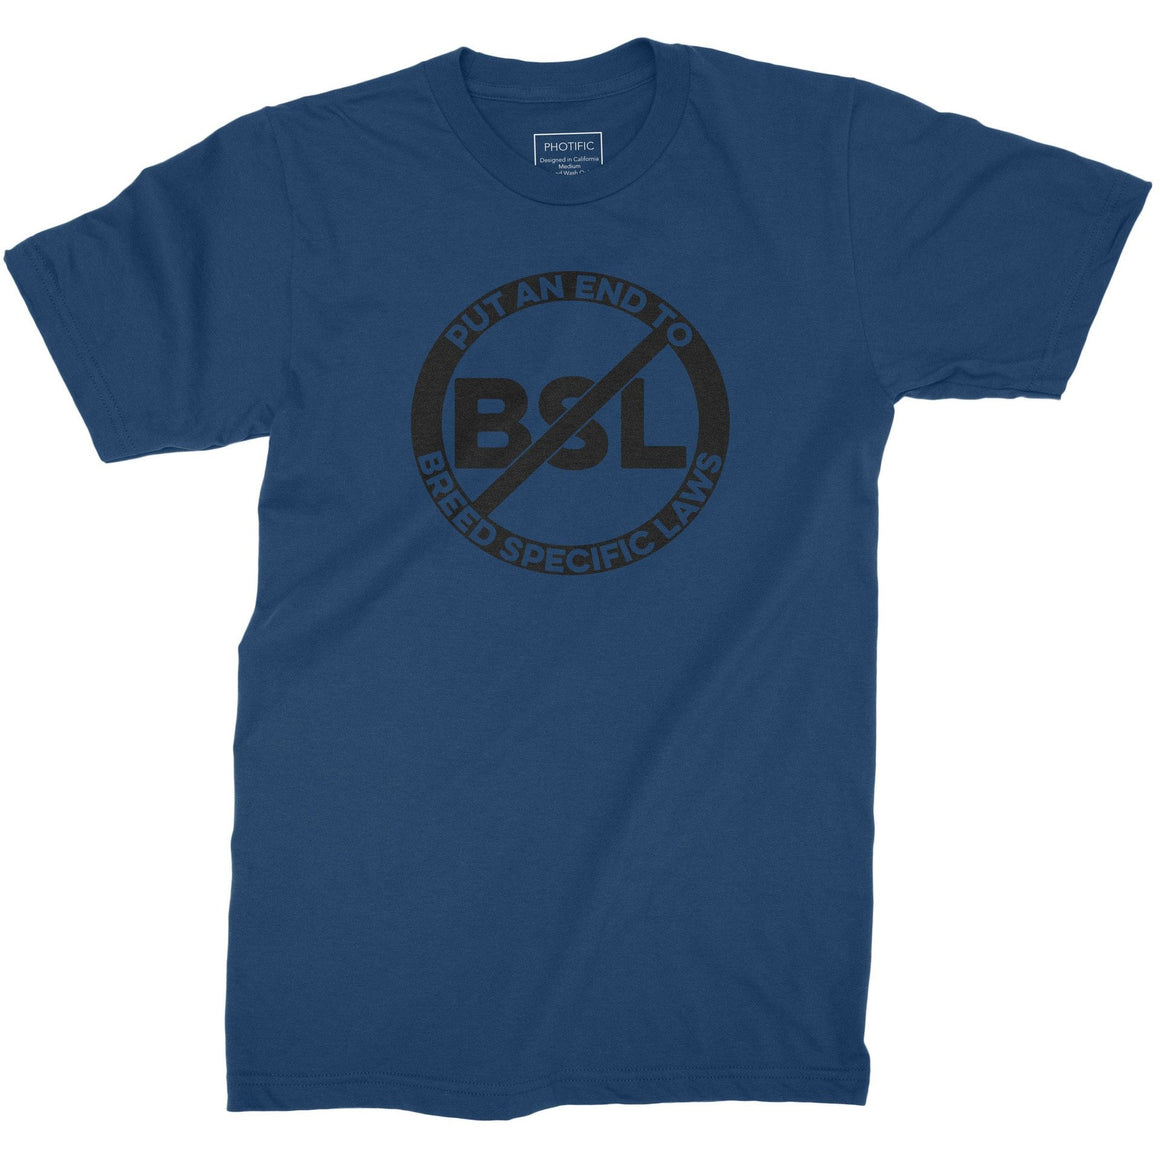 No BSL Youth Pitbull Shirt